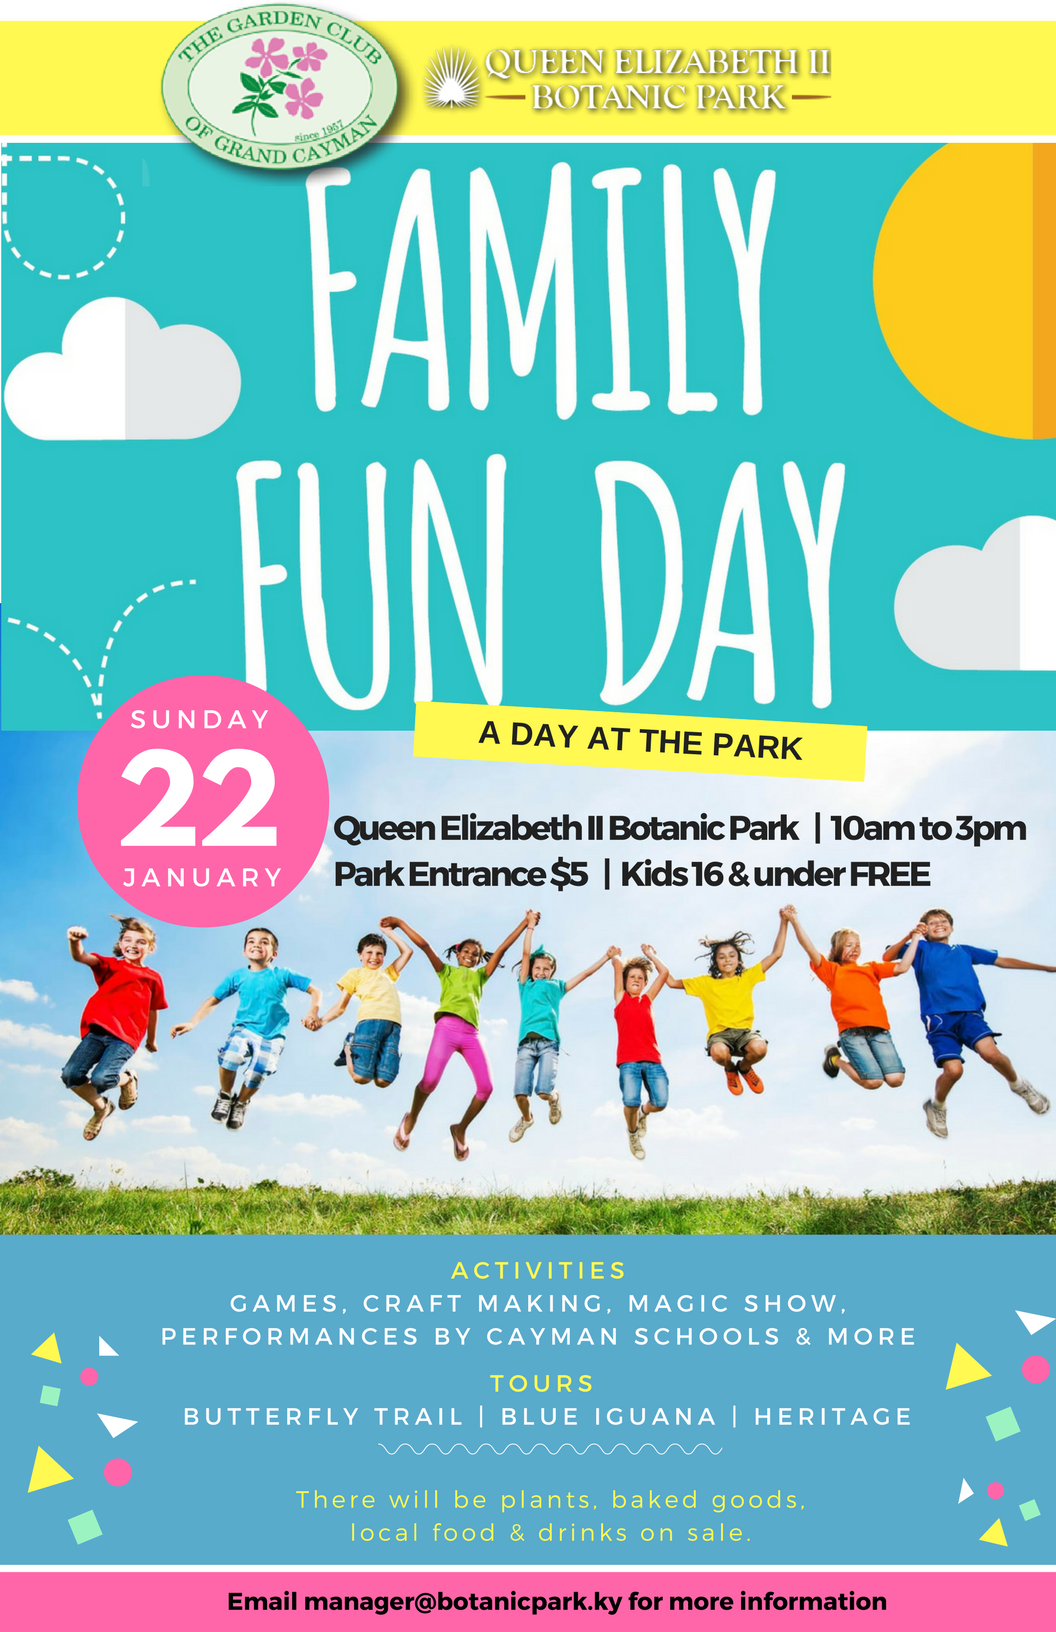 garden-club-family-fun-day-flyer